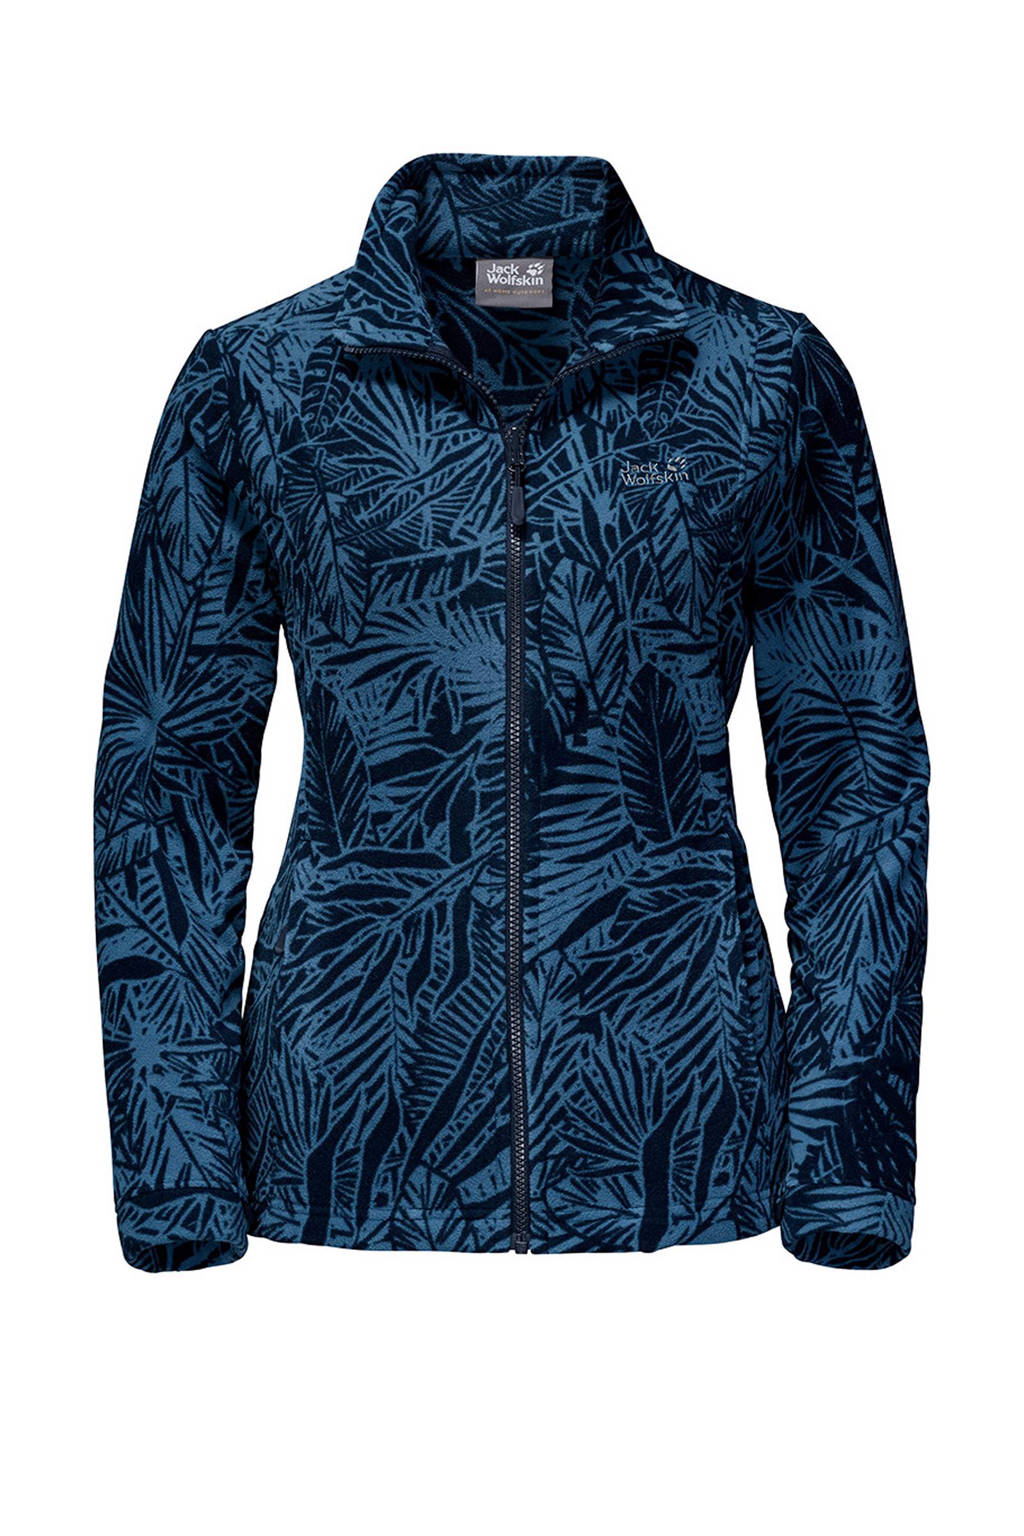 Jack Wolfskin Kiruna Jungle fleecejack, Blauw